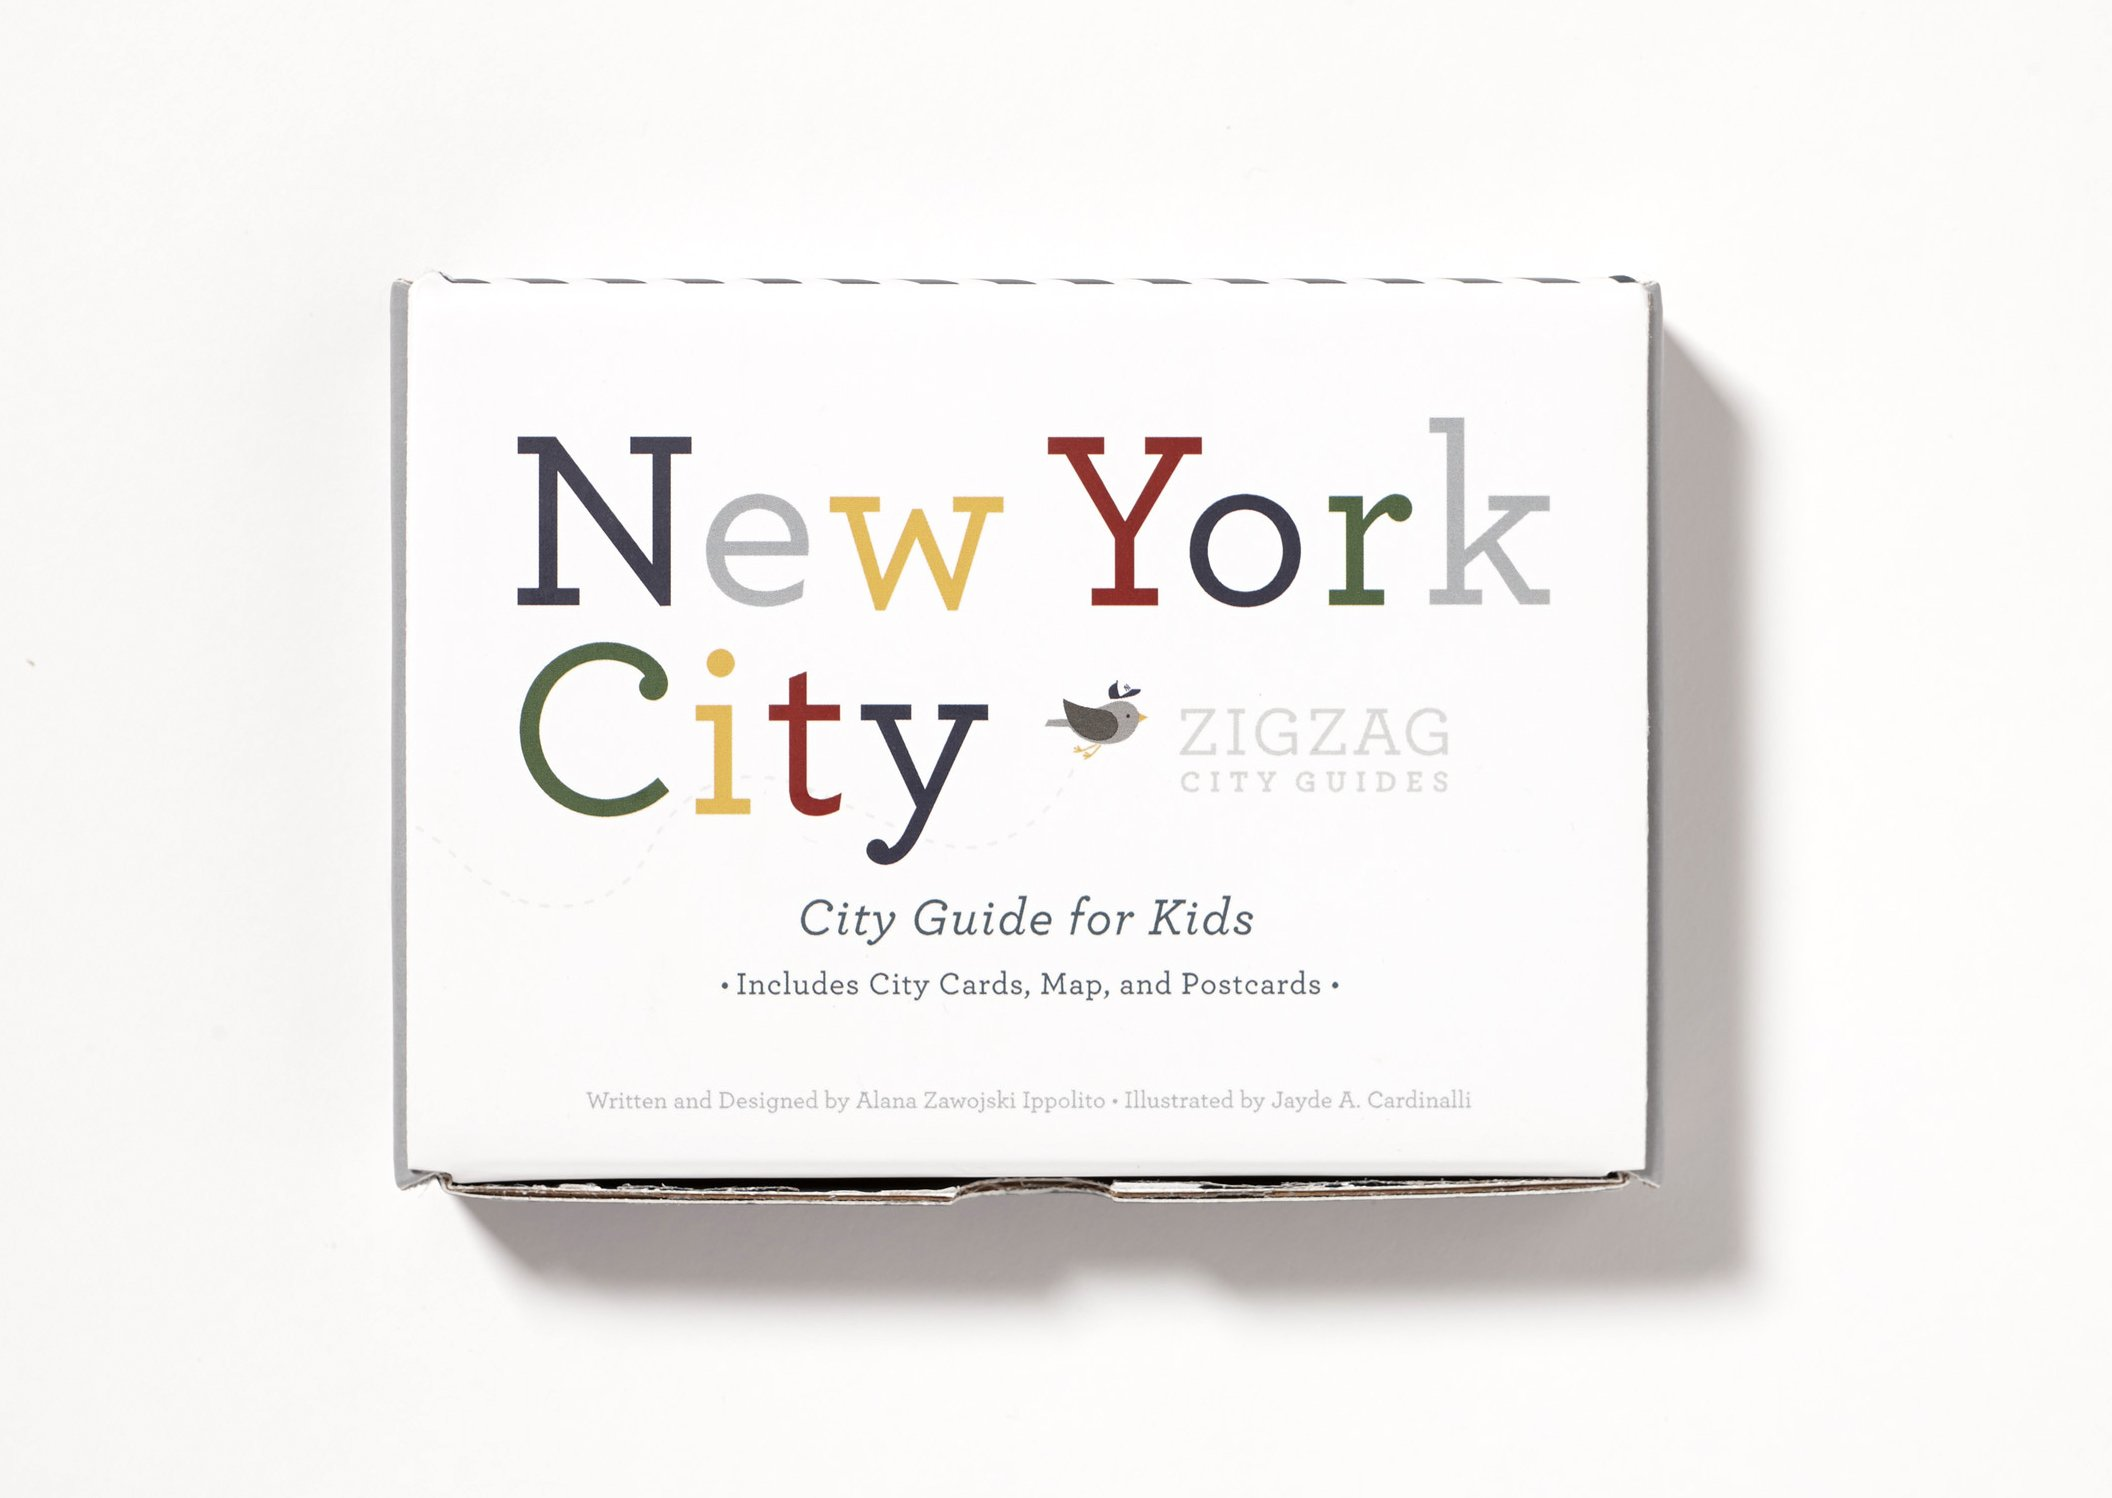 Download ZigZag City Guide to New York City (Travel guide for kids ages 5 and up) PDF